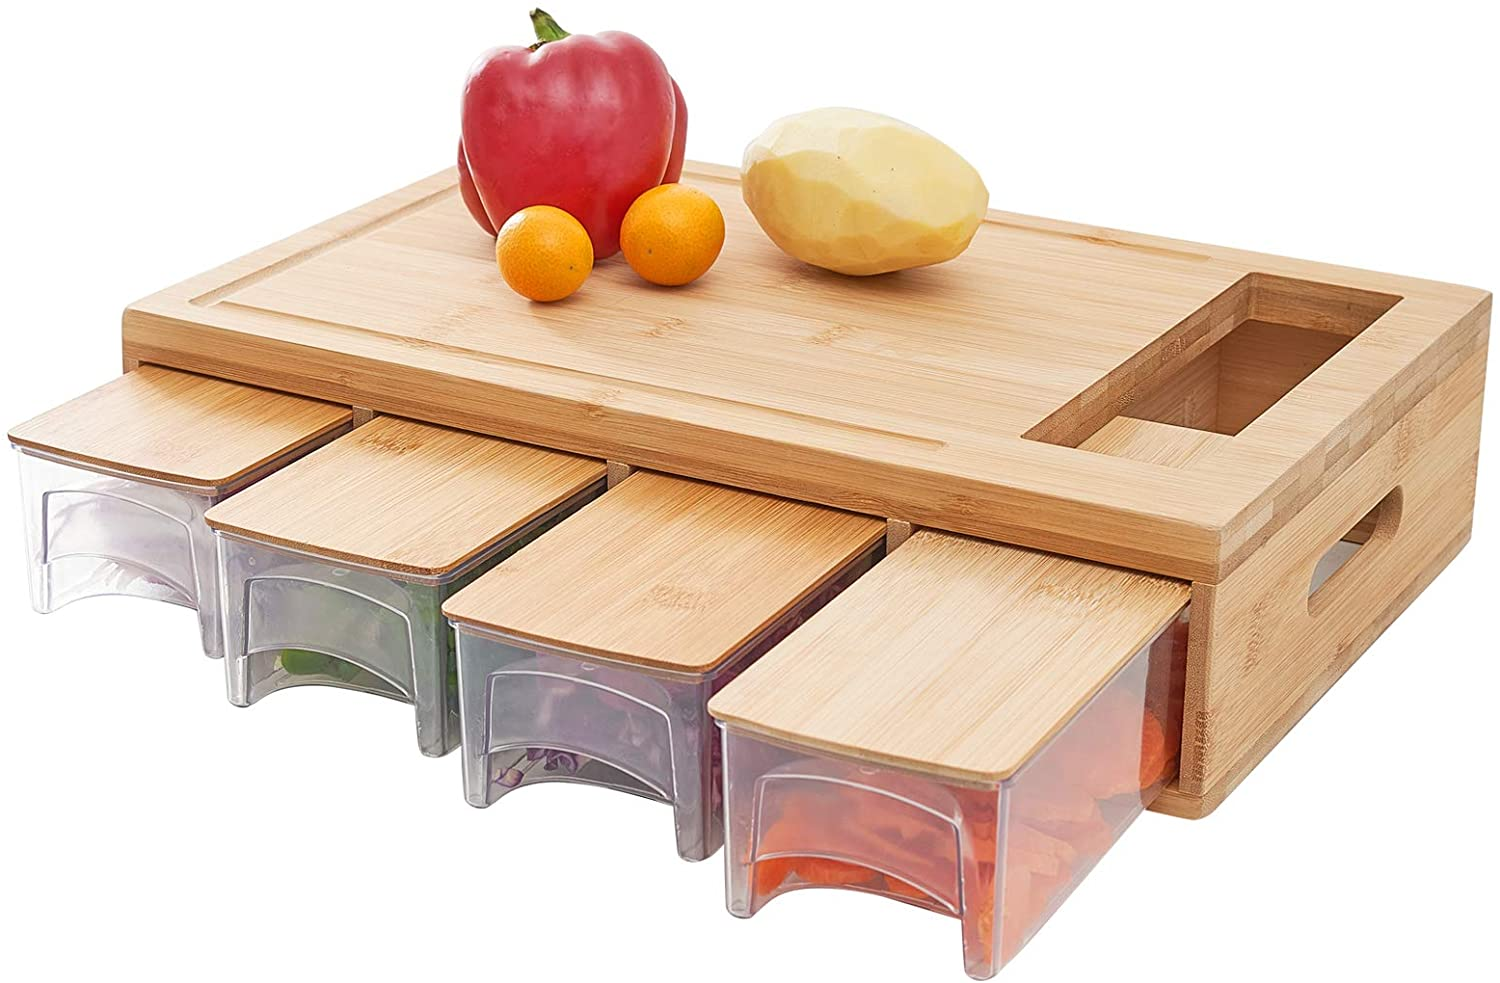 gifts-for-mom-from-daughter-bamboo-cutting-board